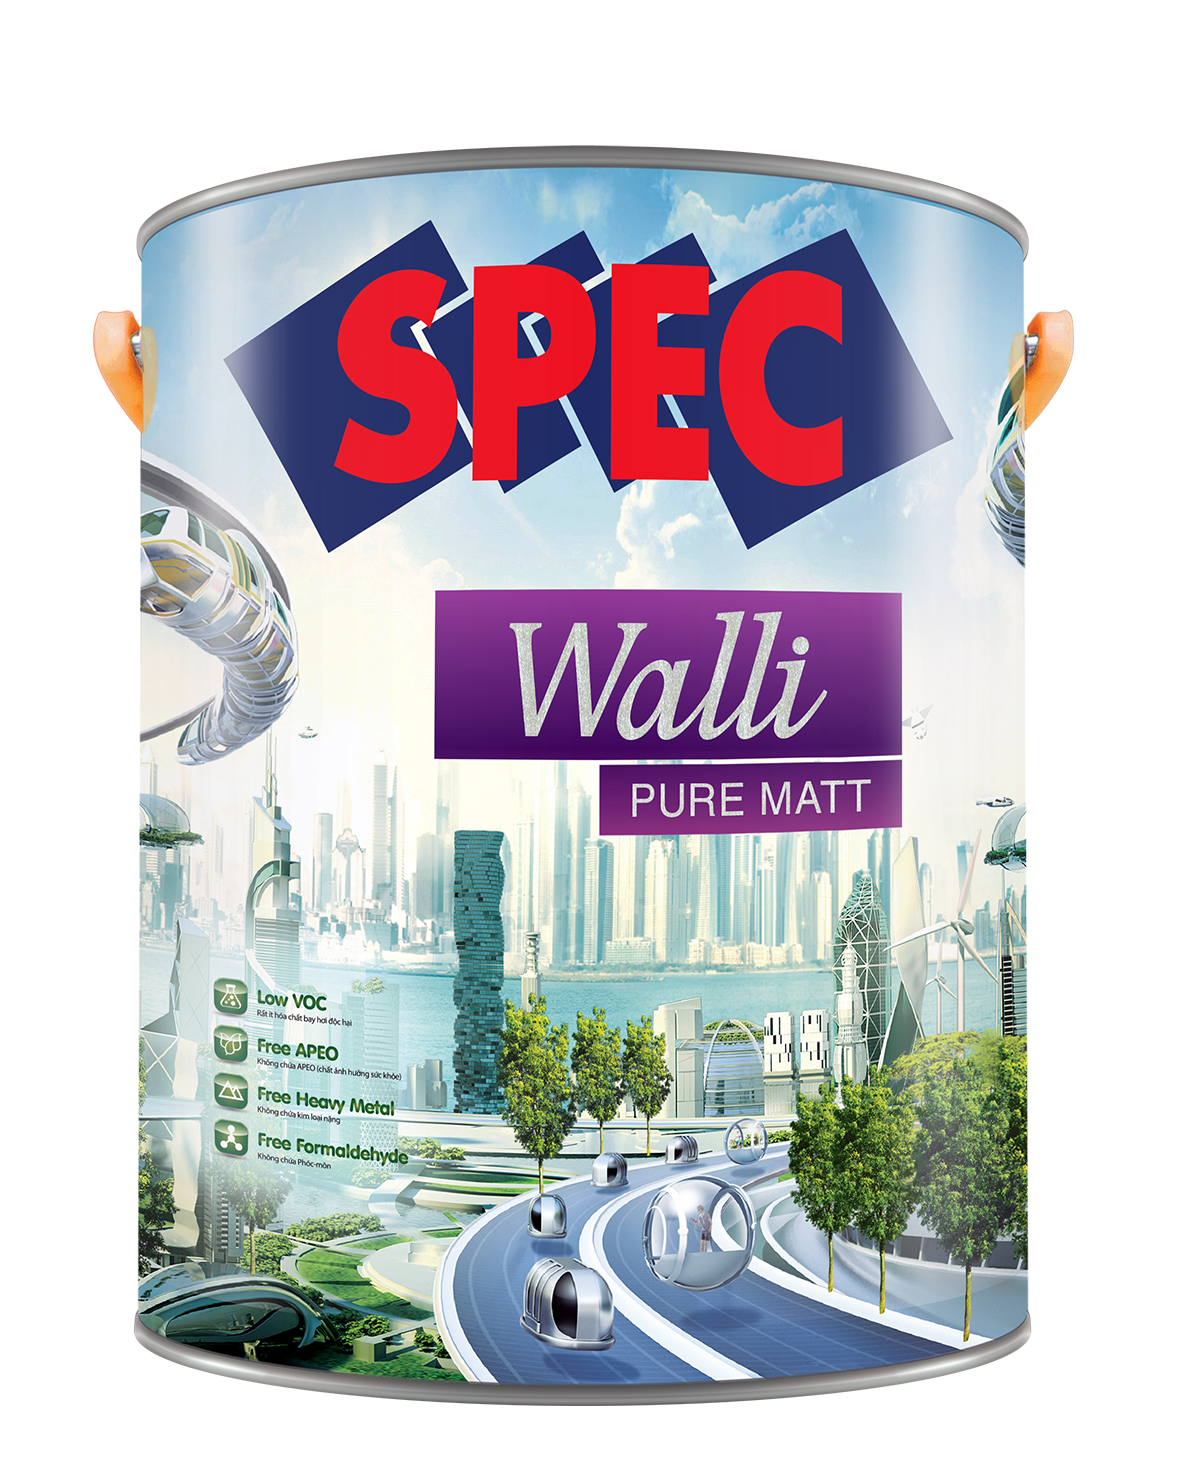 spec-walli-pure-matt